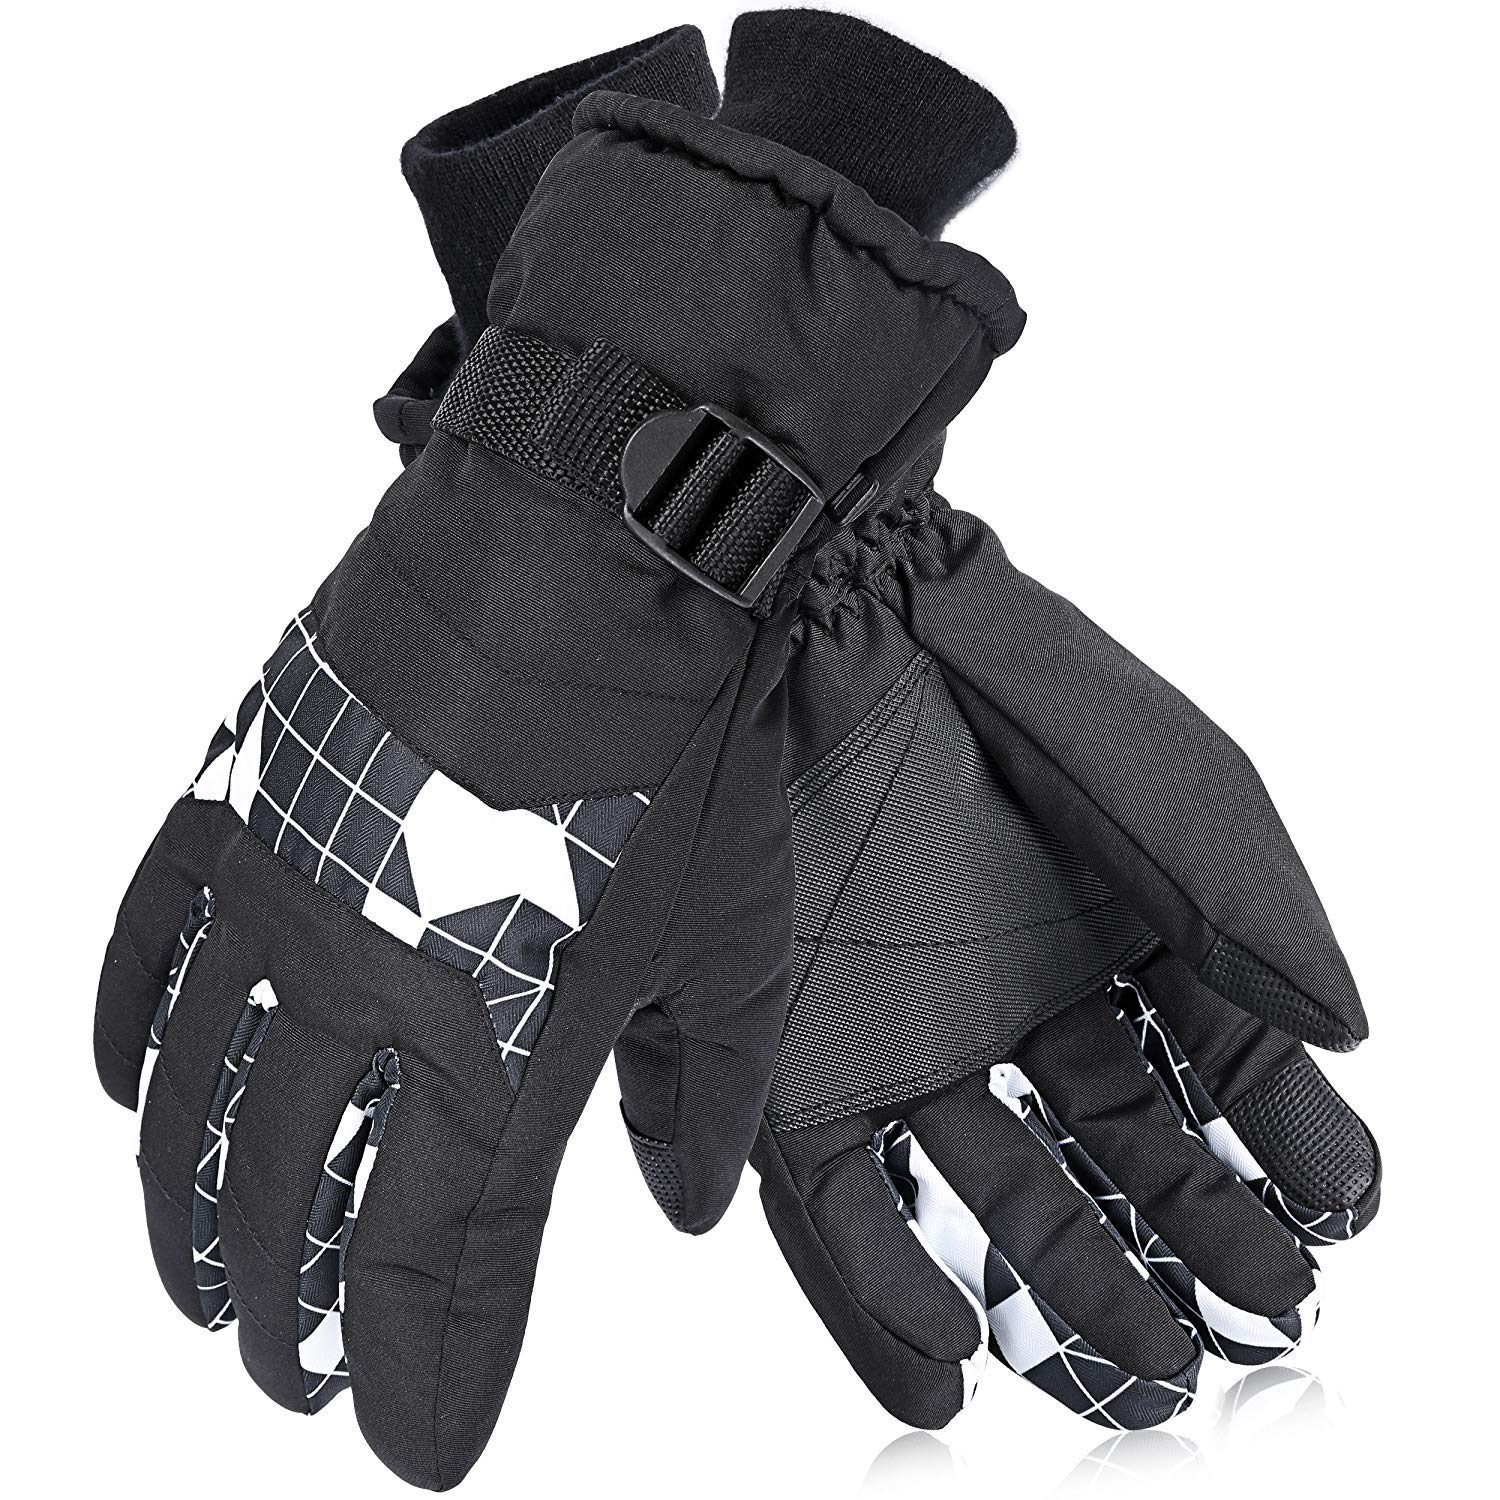 AsDlg Ski Glove Gloves Waterproof Windproof for Men, Women, Boys, Girls Winter Outdoor Sports Warm Couple Snowboard Gloves Thermal Warm Snow Skiing Snowboarding Snowmobile with Adjustable Cuffs by AsDlg